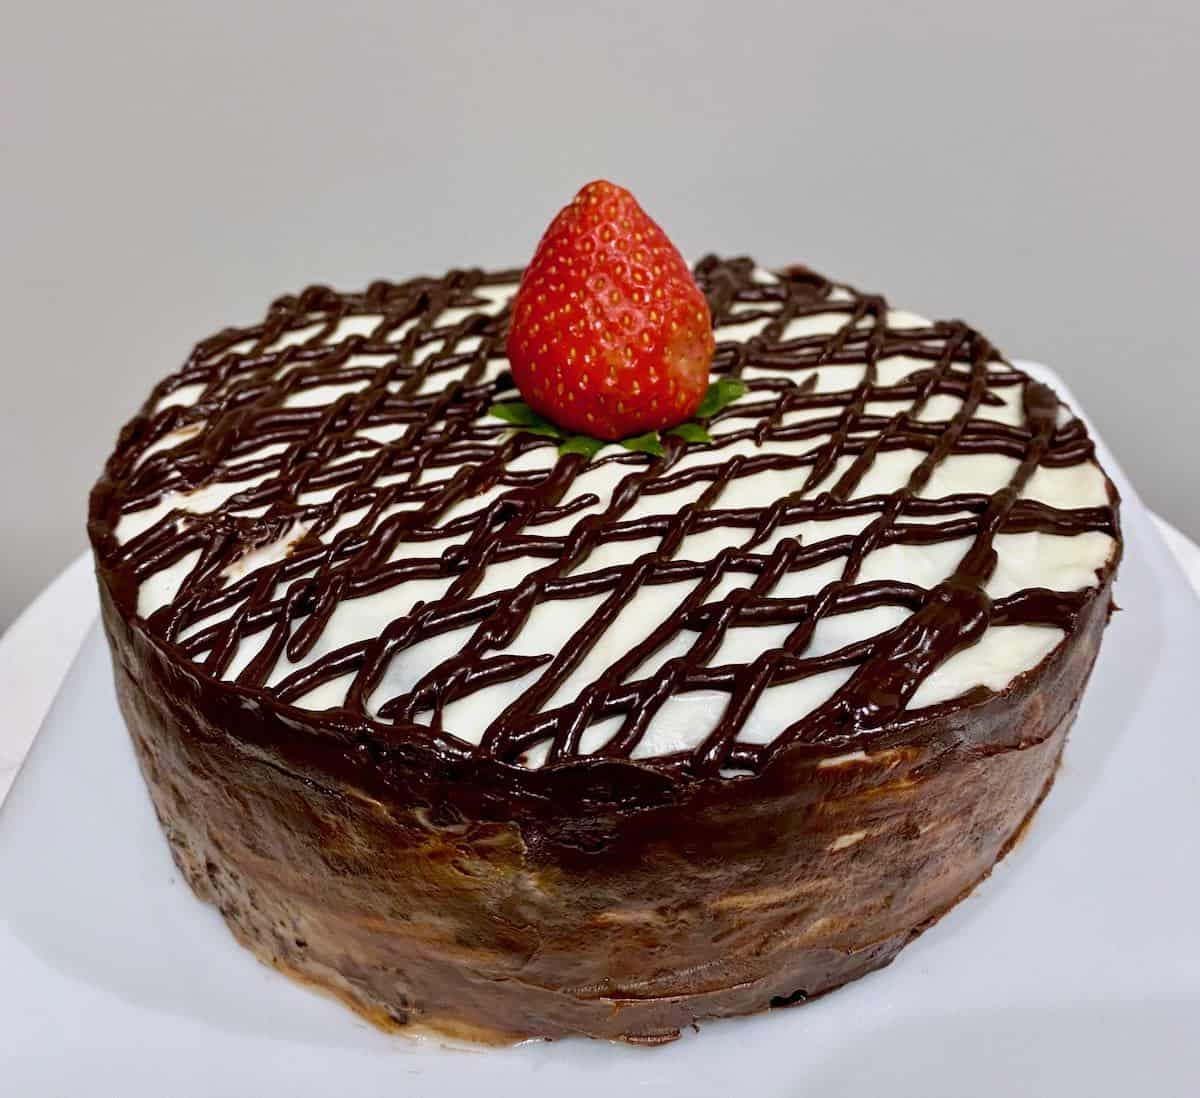 Surprise Sous Vide Chocolate Cake, Strawberries & The Best Ganache Cream Cheese Frosting